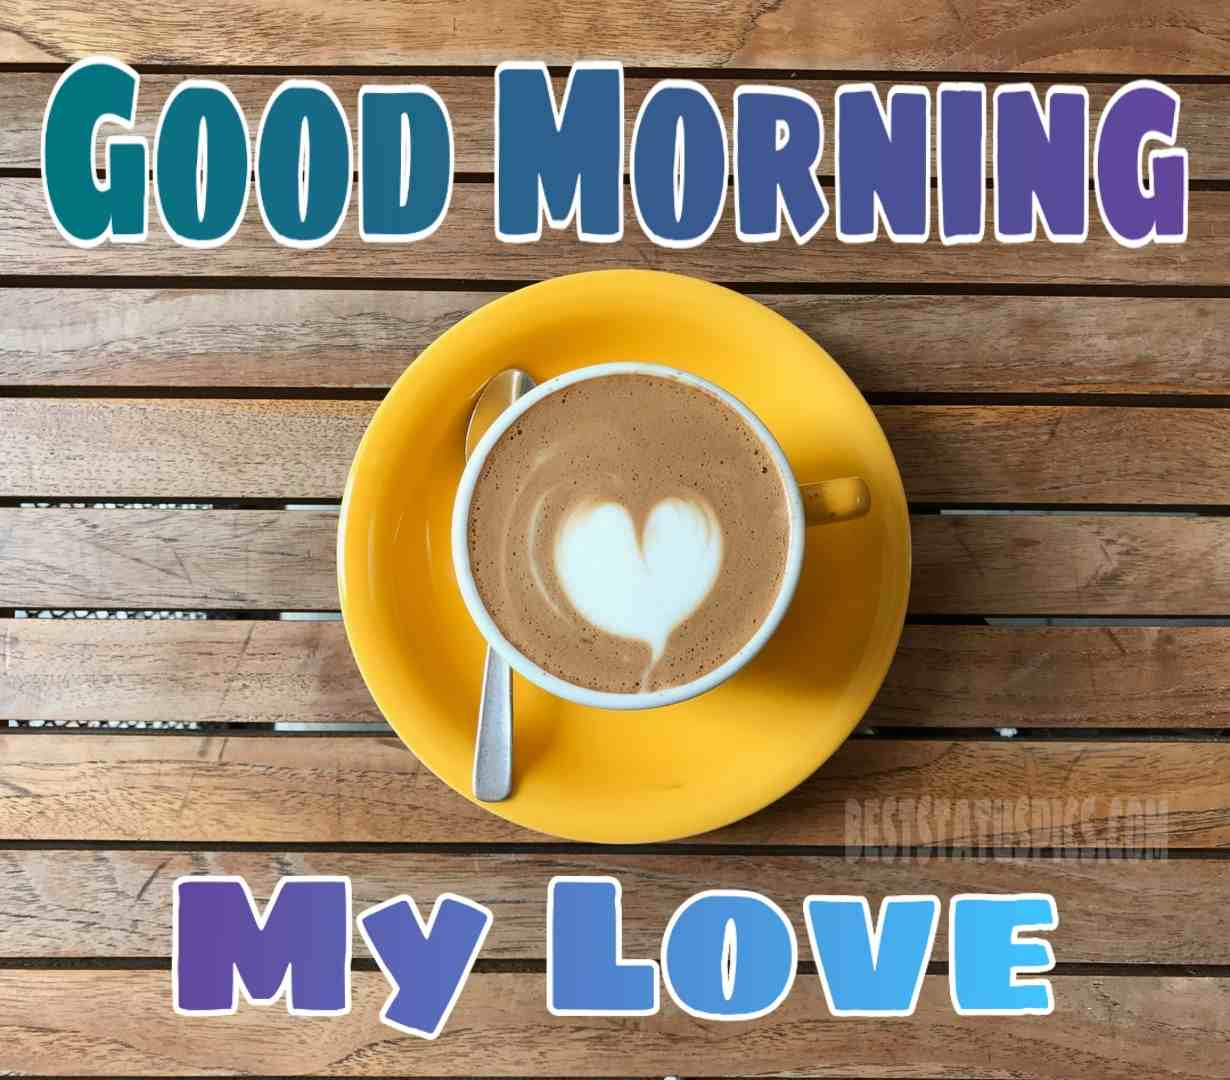 Good morning my love wish with coffee cup and love symbol